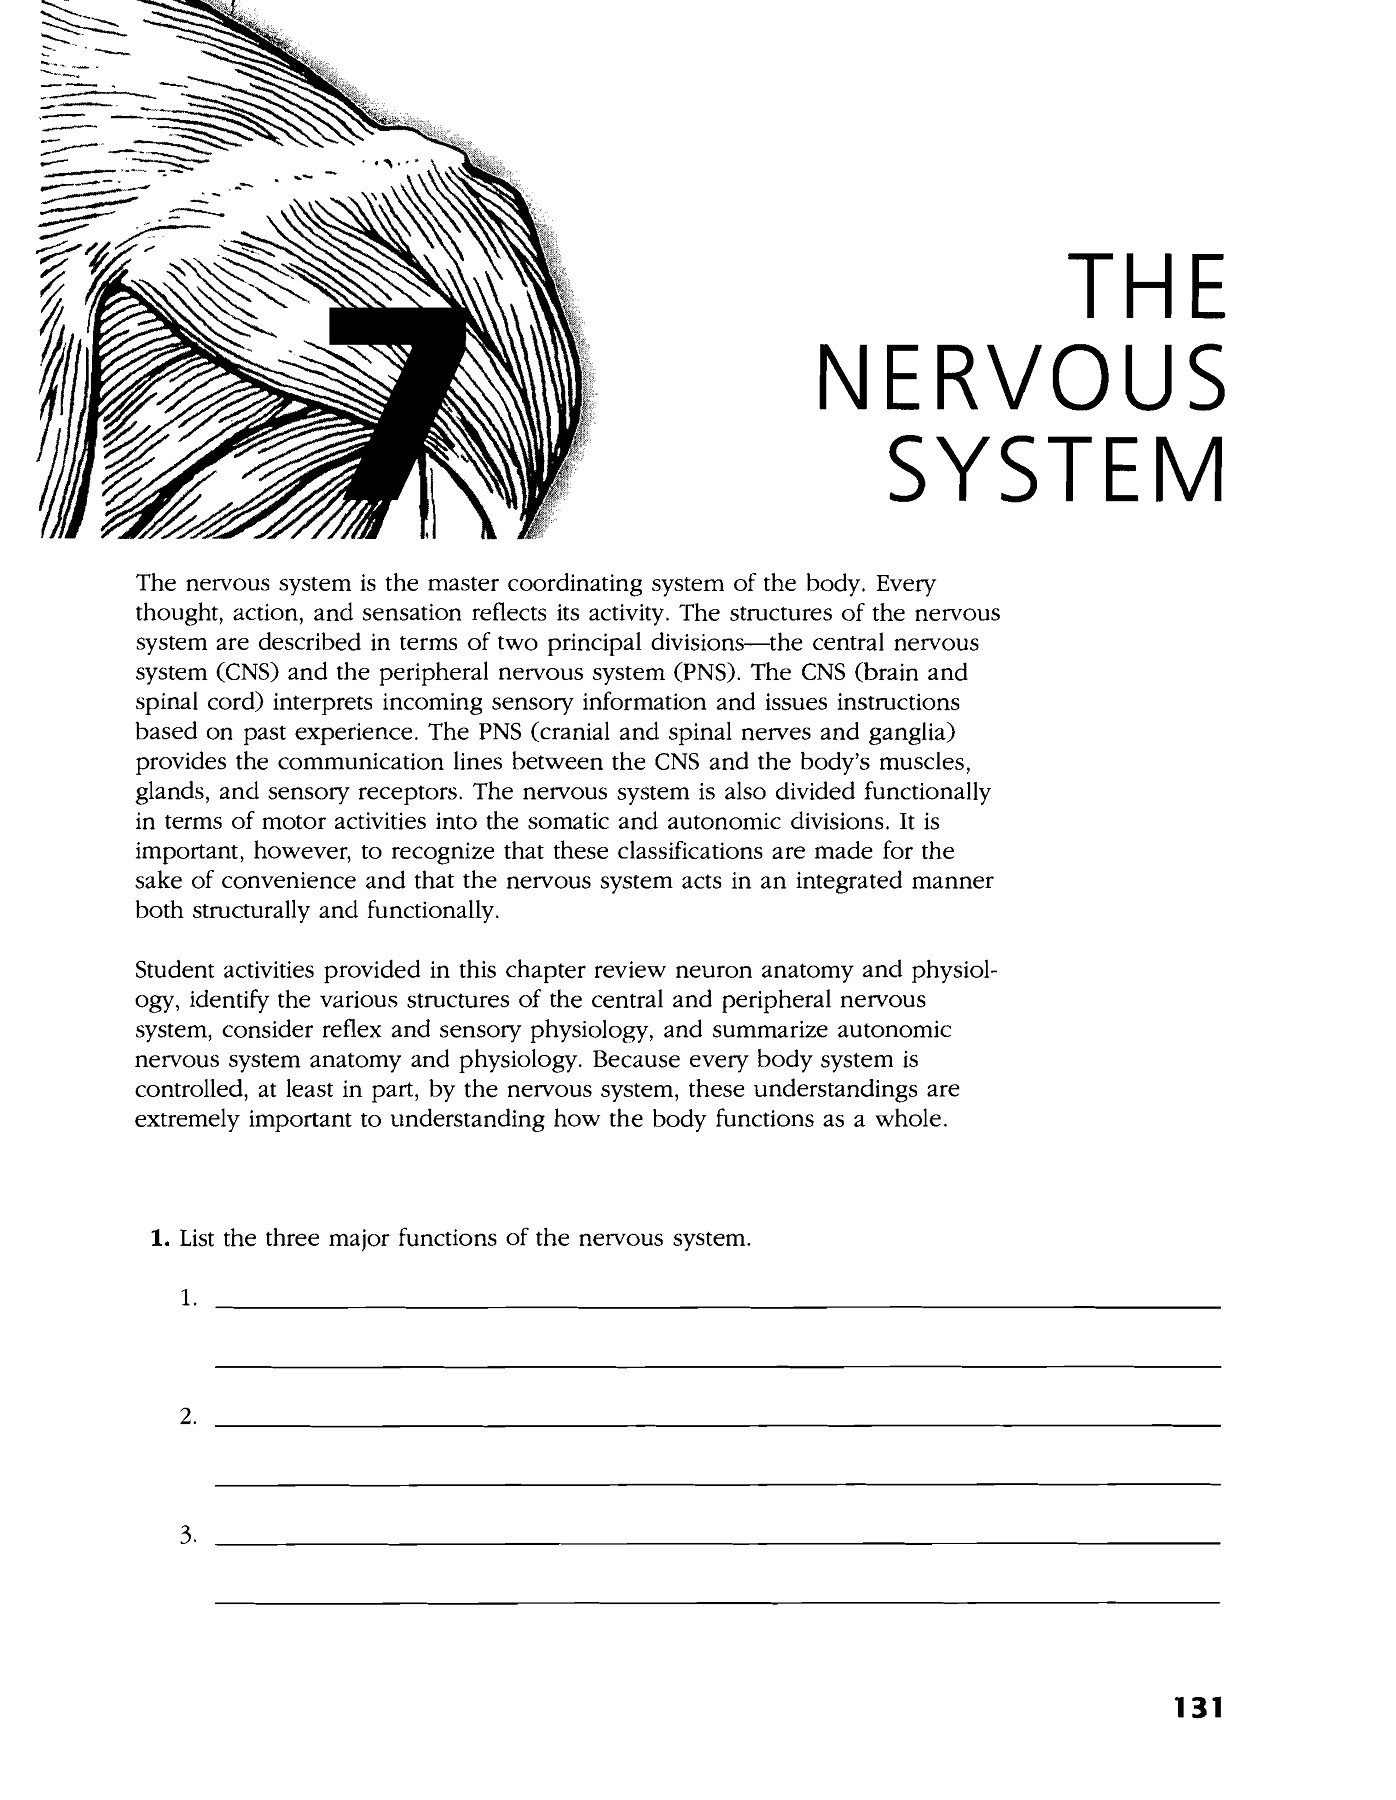 Nervous System Coloring Worksheet the Nervous System Lake County Schools Overview Pages 1